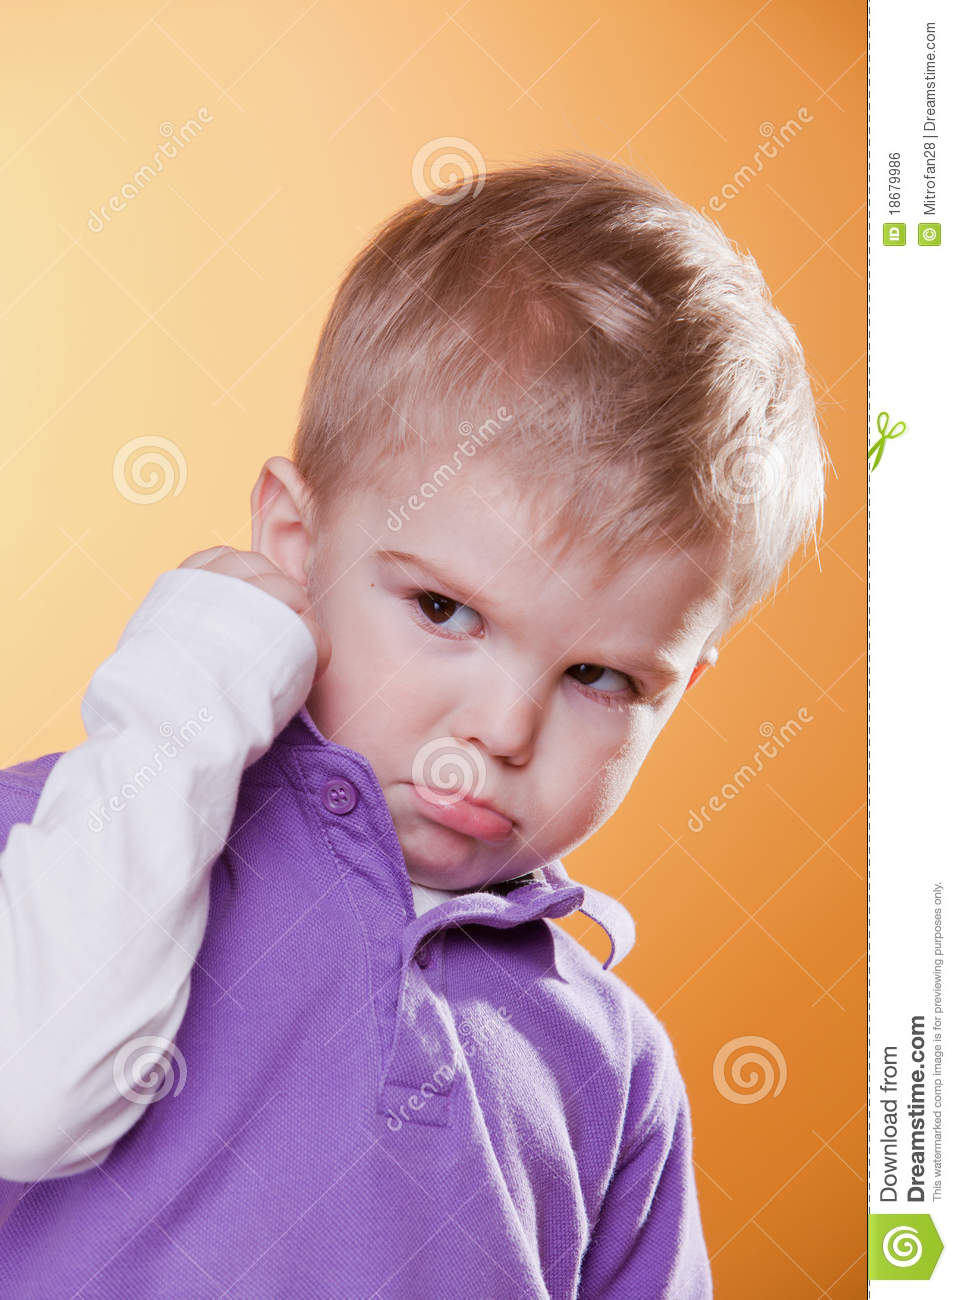 angry upset little boy showing fist royalty free stock